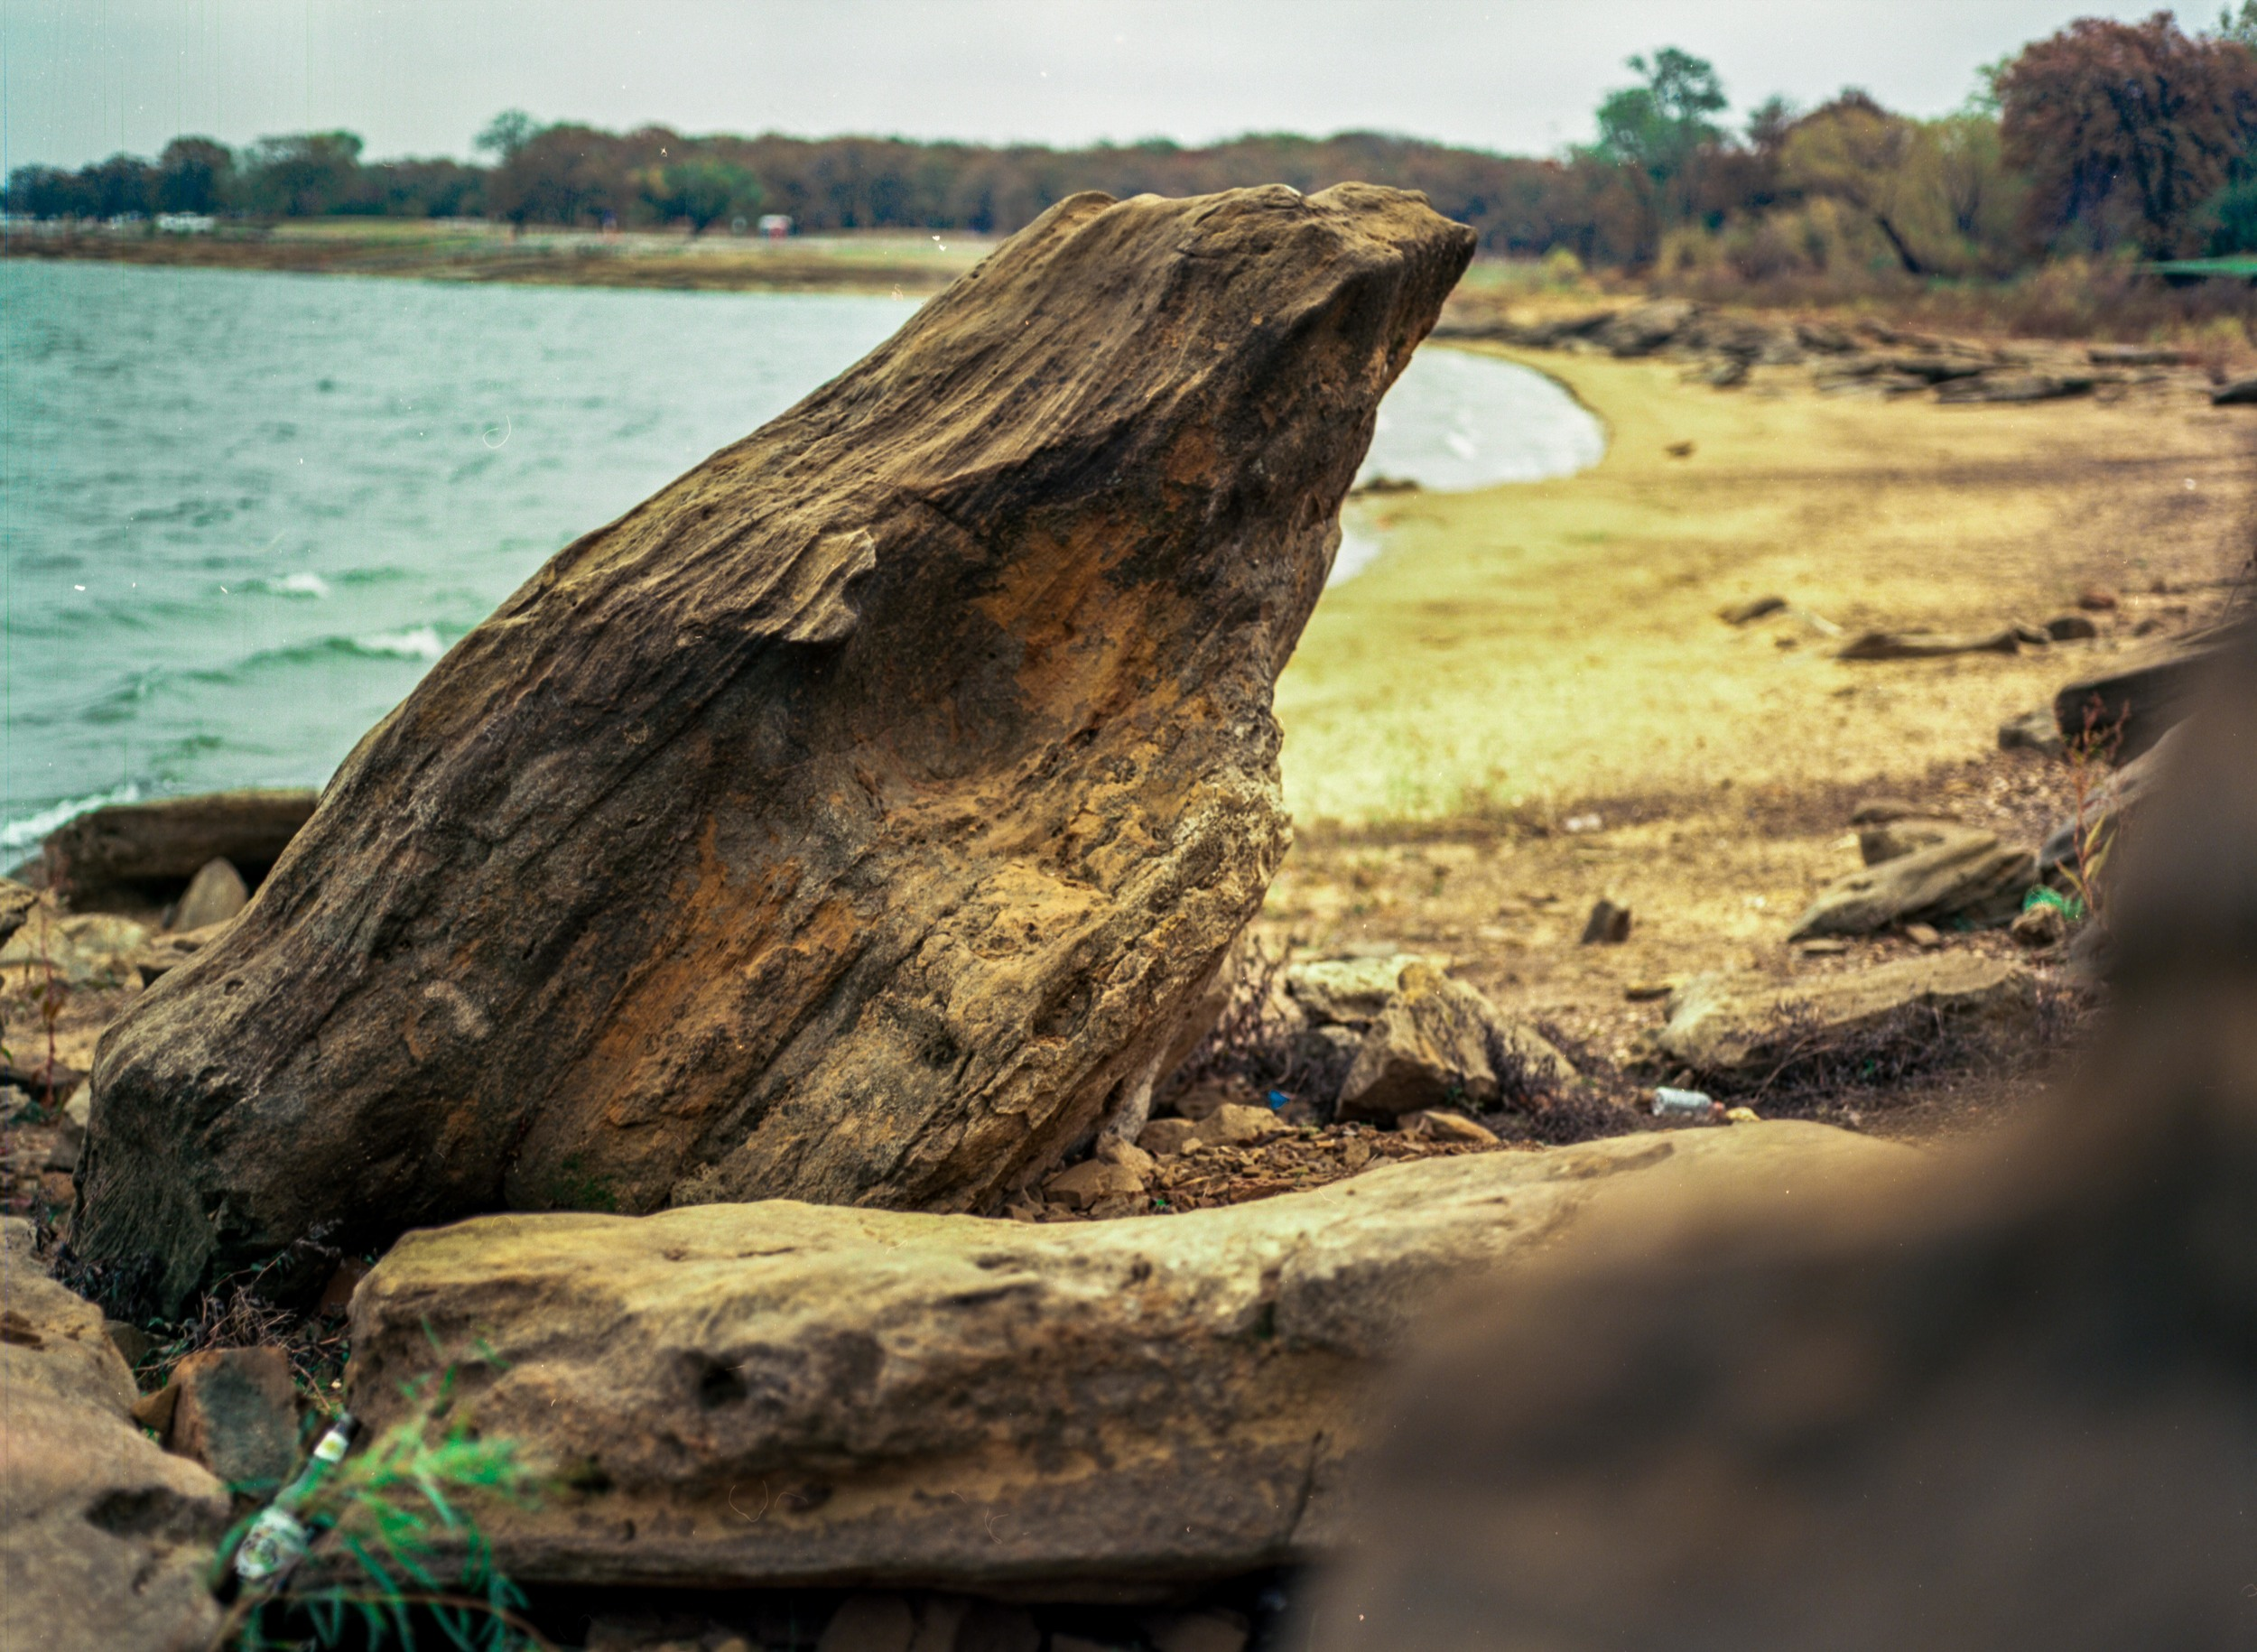 Lewisville Lake is one of my favorite places to shoot